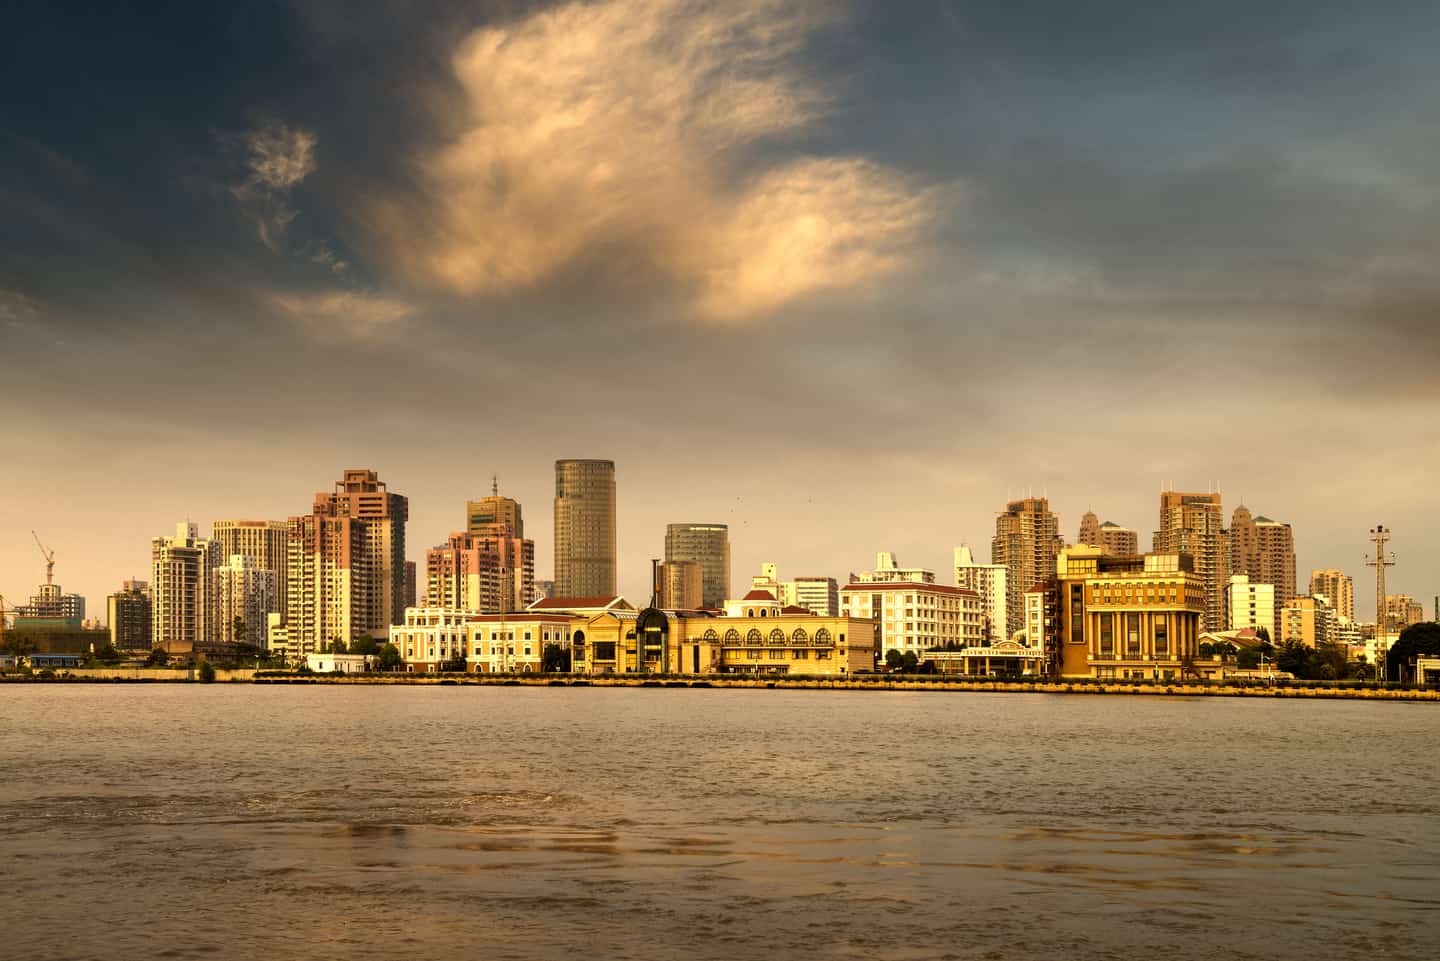 Places To Visit In Mumbai 27 Popular Tourist Attractions